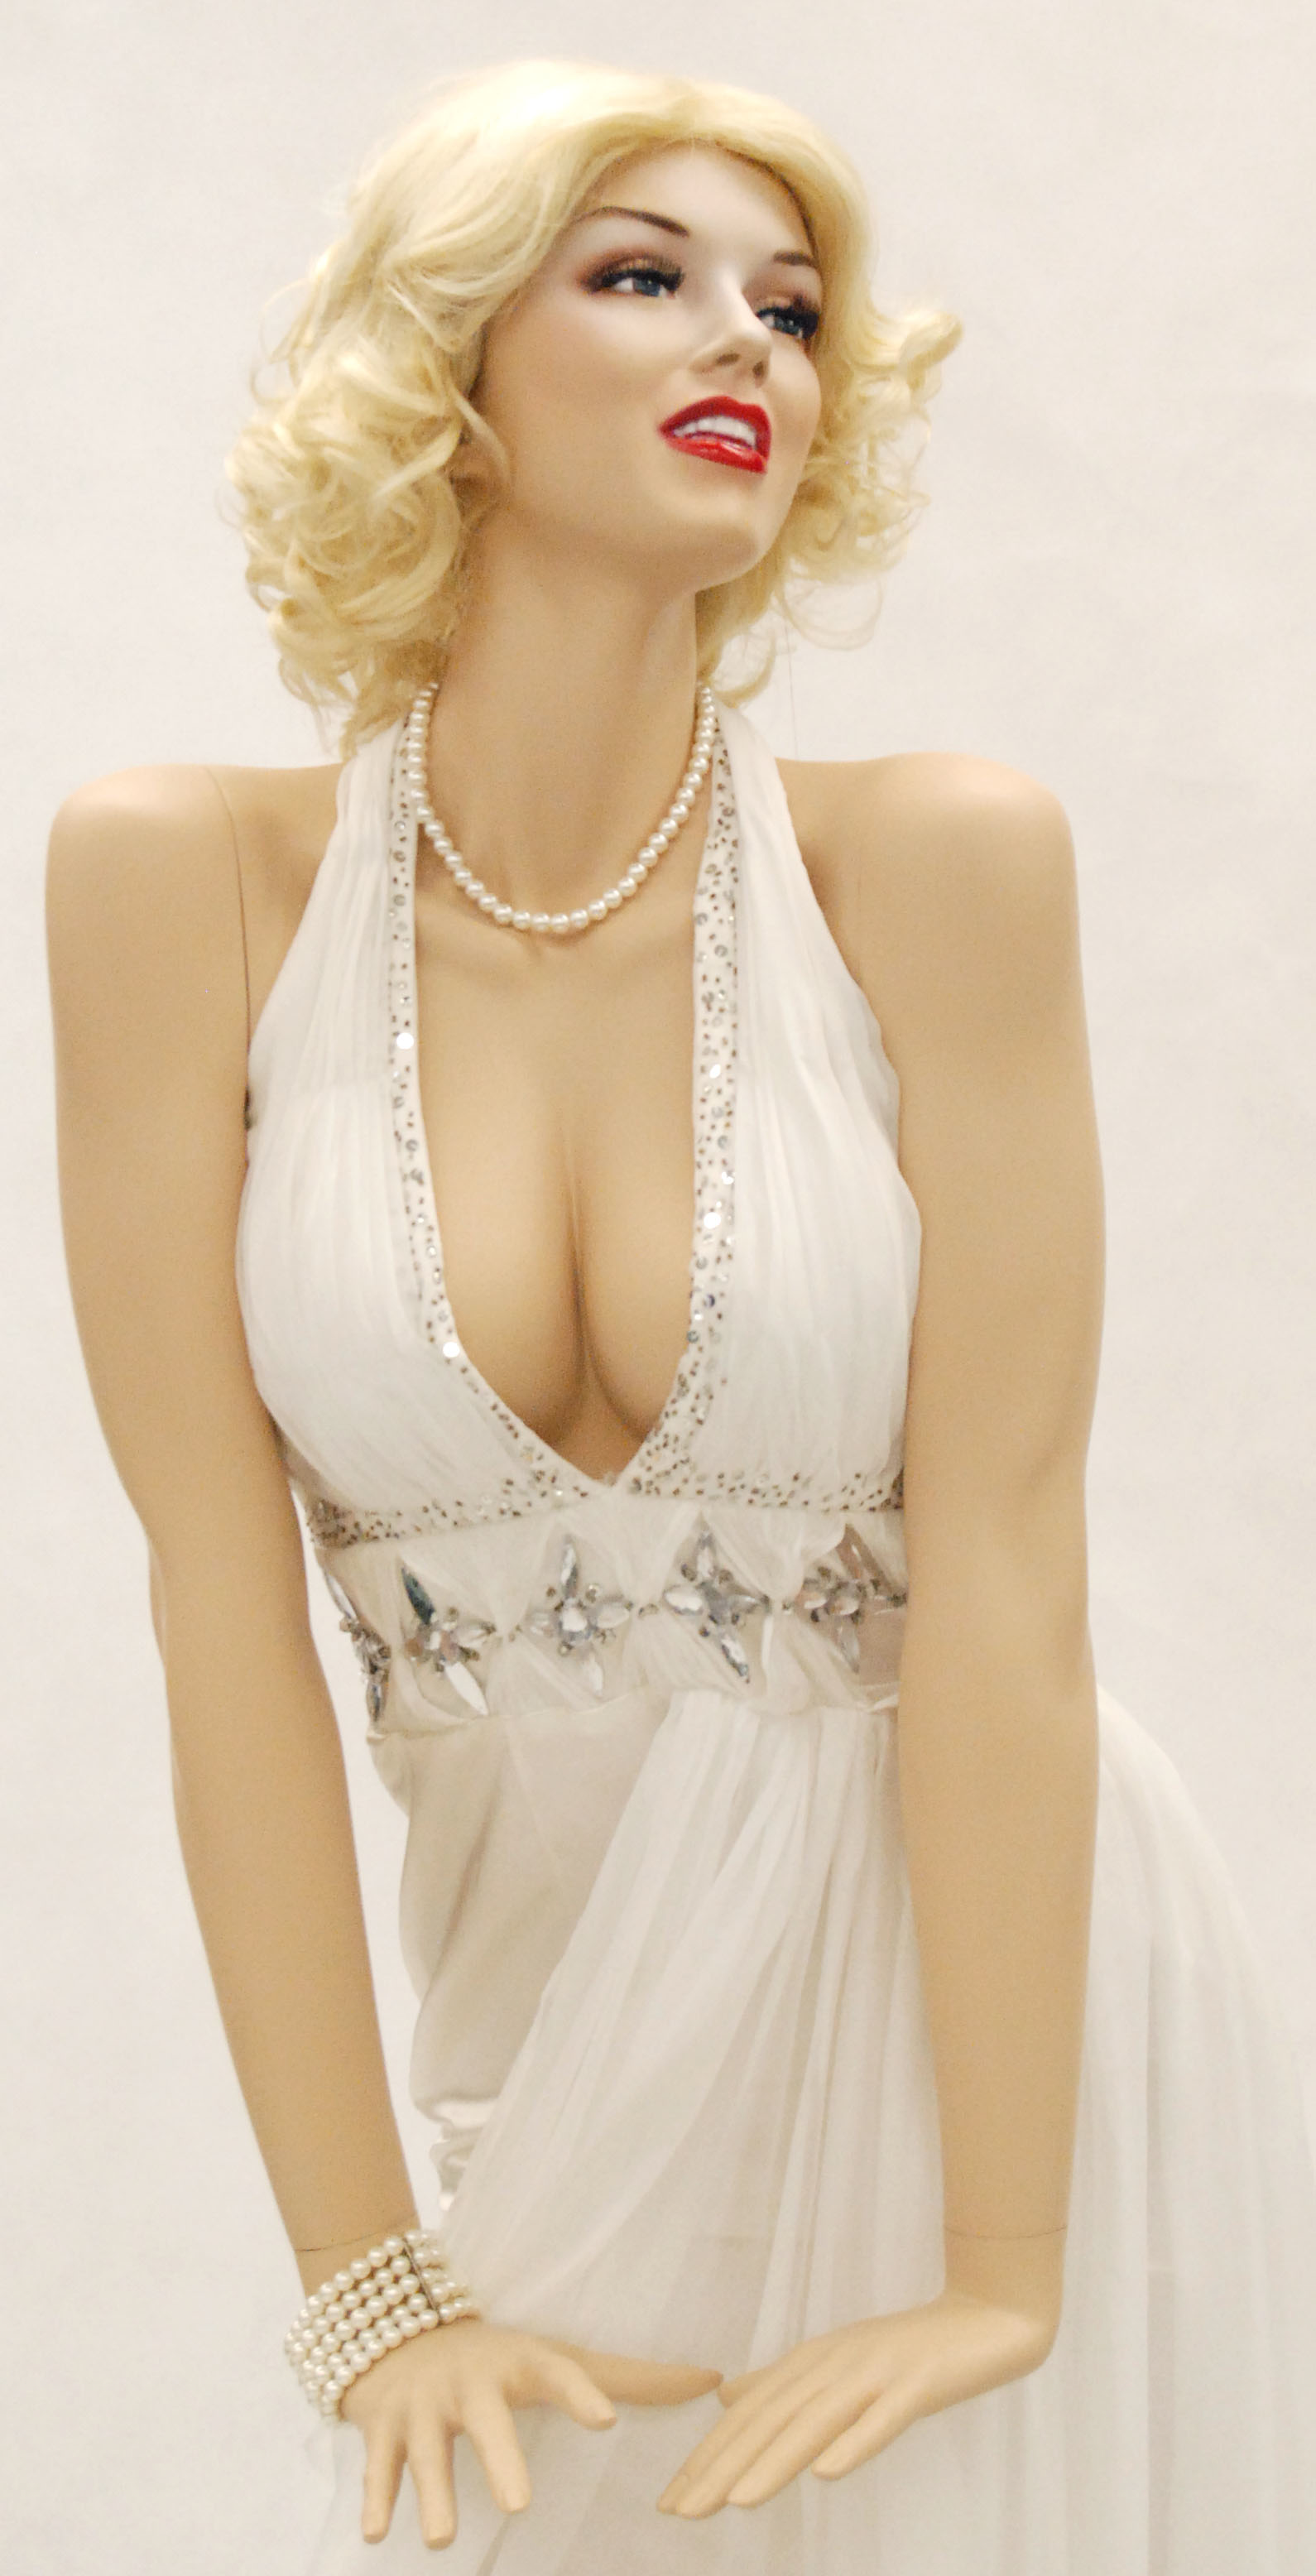 Marilyn Monroe Style Mannequin For Sale 300